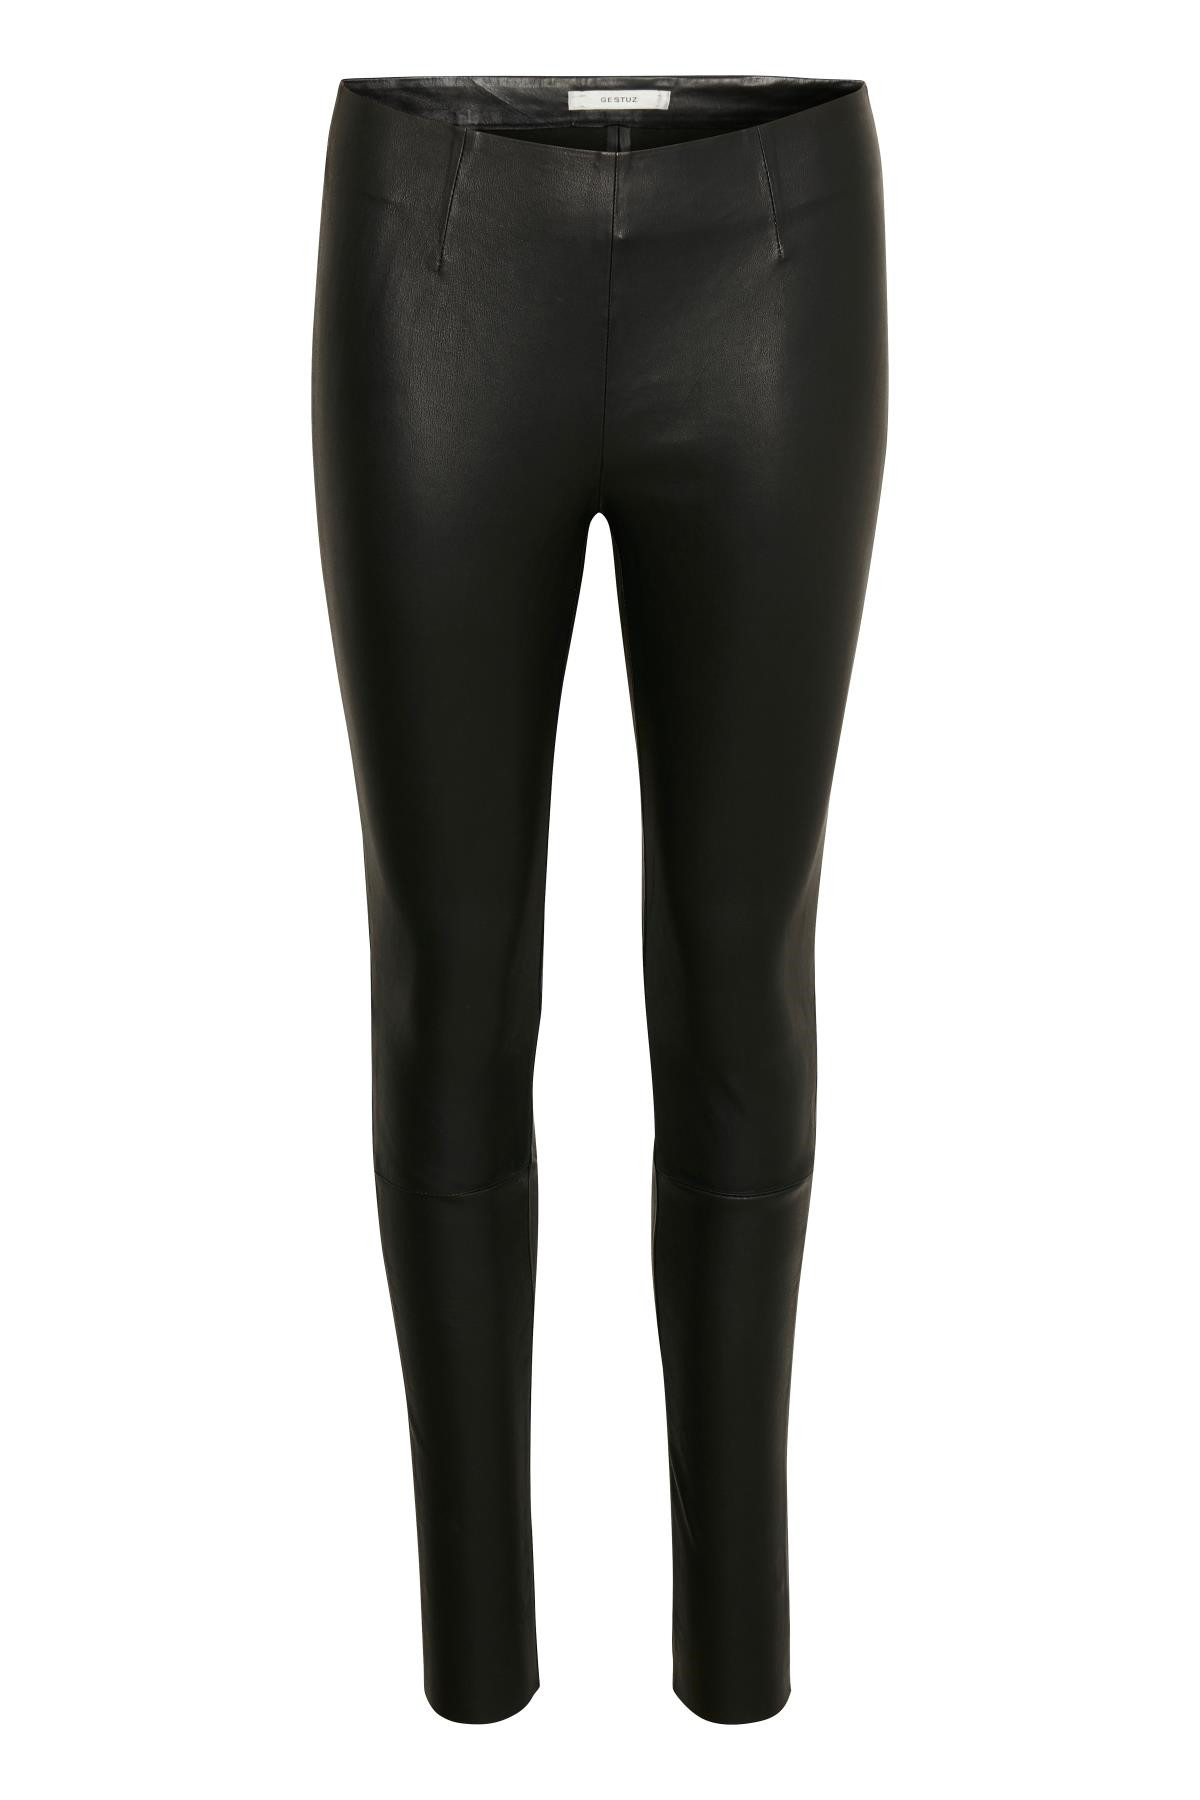 Image of   GESTUZ SASHA LEGGINGS (Black 90001, 36)